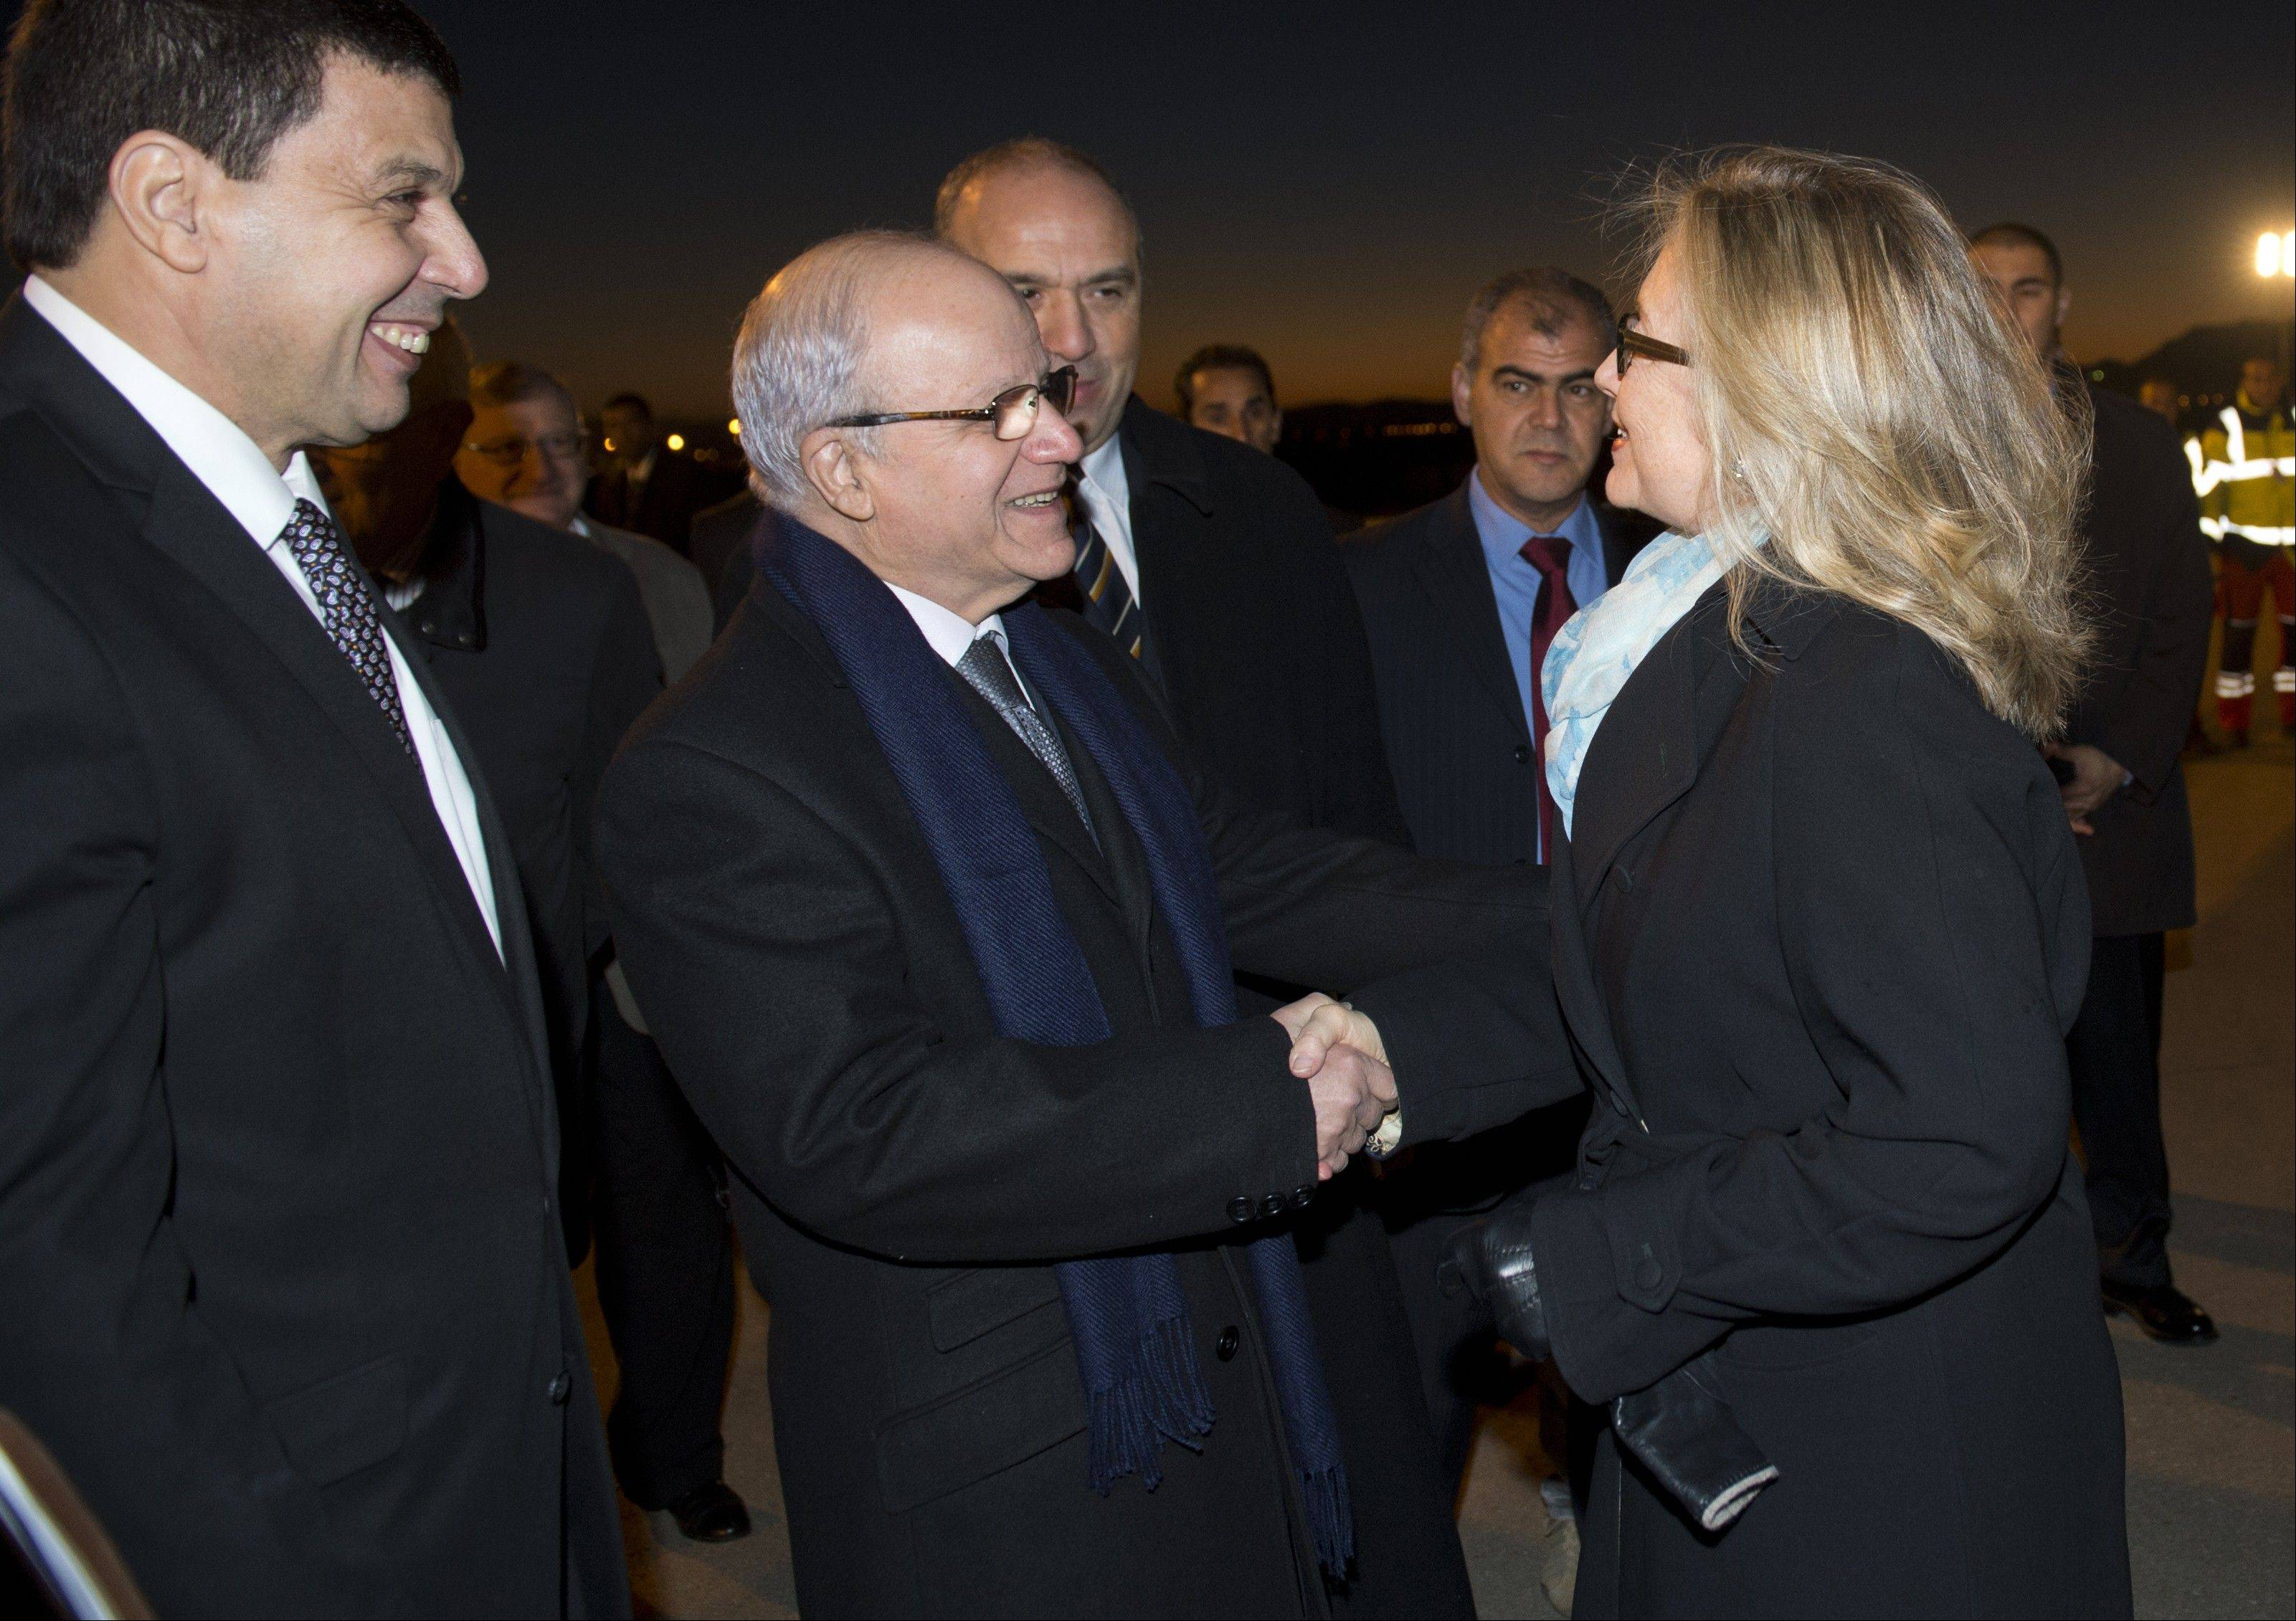 Algerian Foreign Minister Mourad Medelci, center, greets U.S. Secretary of State Hillary Rodham Clinton, upon her arrival at Houari Boumediene Airport, in Algiers, Algeria, Monday. Clinton is on a five-day trip overseas to increase pressure on Mali's al-Qaida-linked rebels and help Balkan nations end long-simmering ethnic and political disagreements.